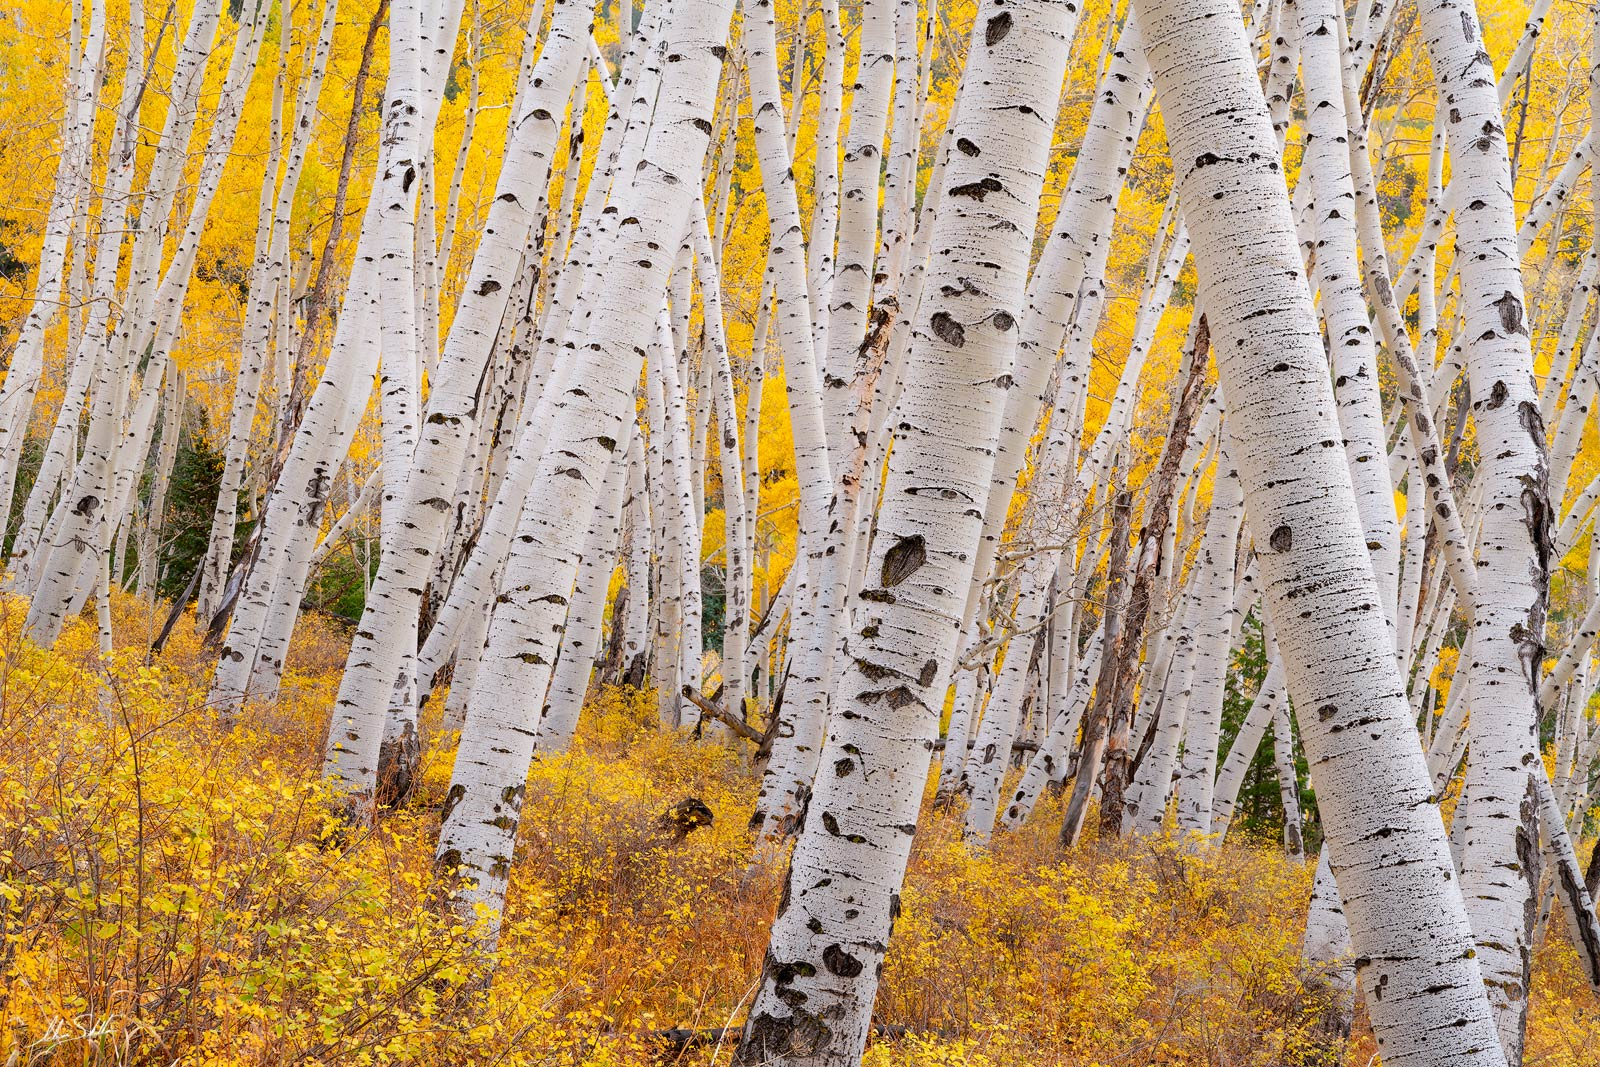 Aspen Trees, Aspens, Autumn, CO, Colorado, Colorado Fall Color, Fall, Fall Color, Fall color in Colorado, Populus tremuloides, Rocky Mountains, San Juan Mountains, Telluride, Trees, Yellow, photo